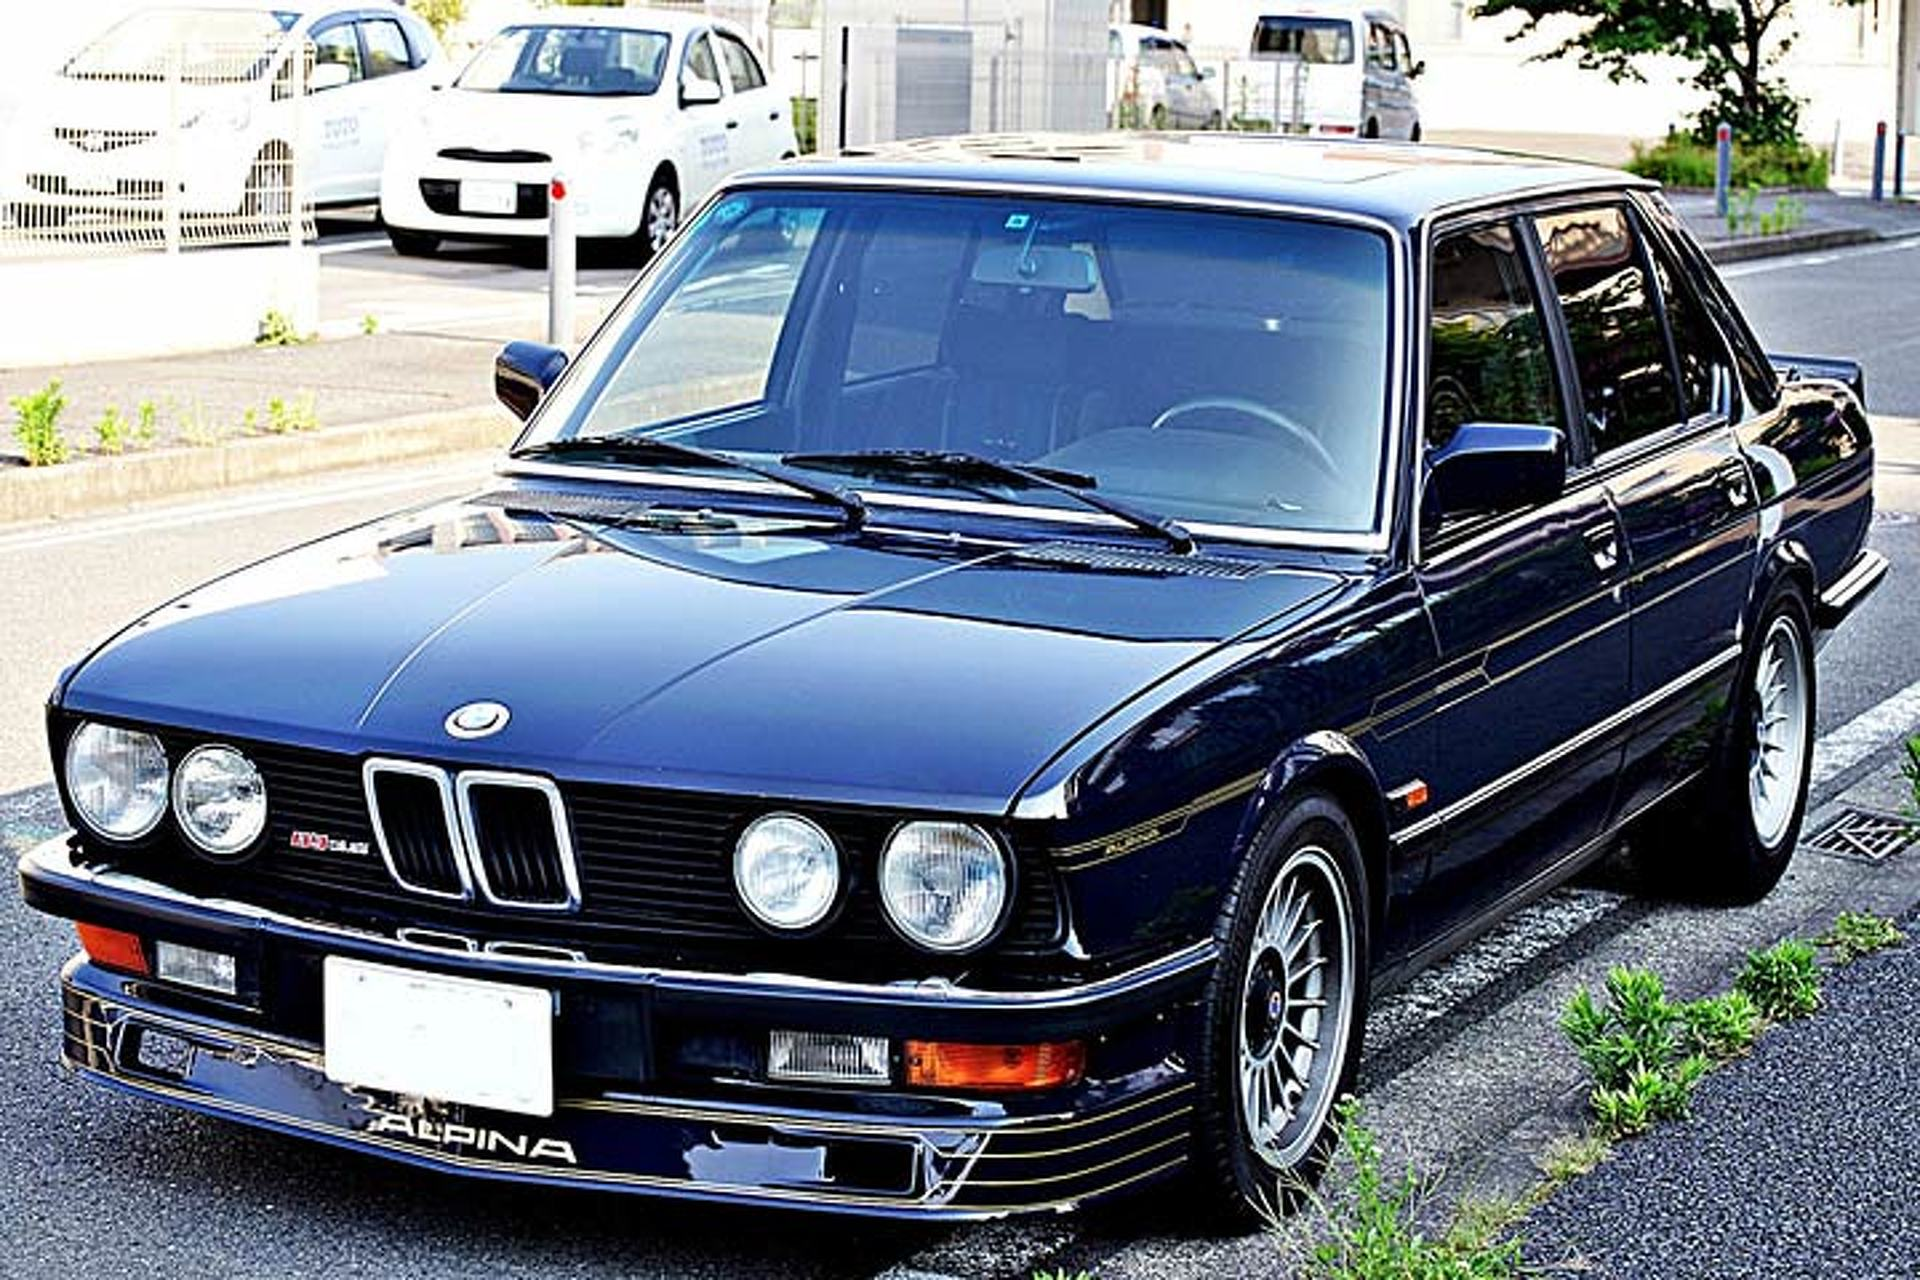 This 1983 Alpina B9 is a Rare Alternative to the BMW M5